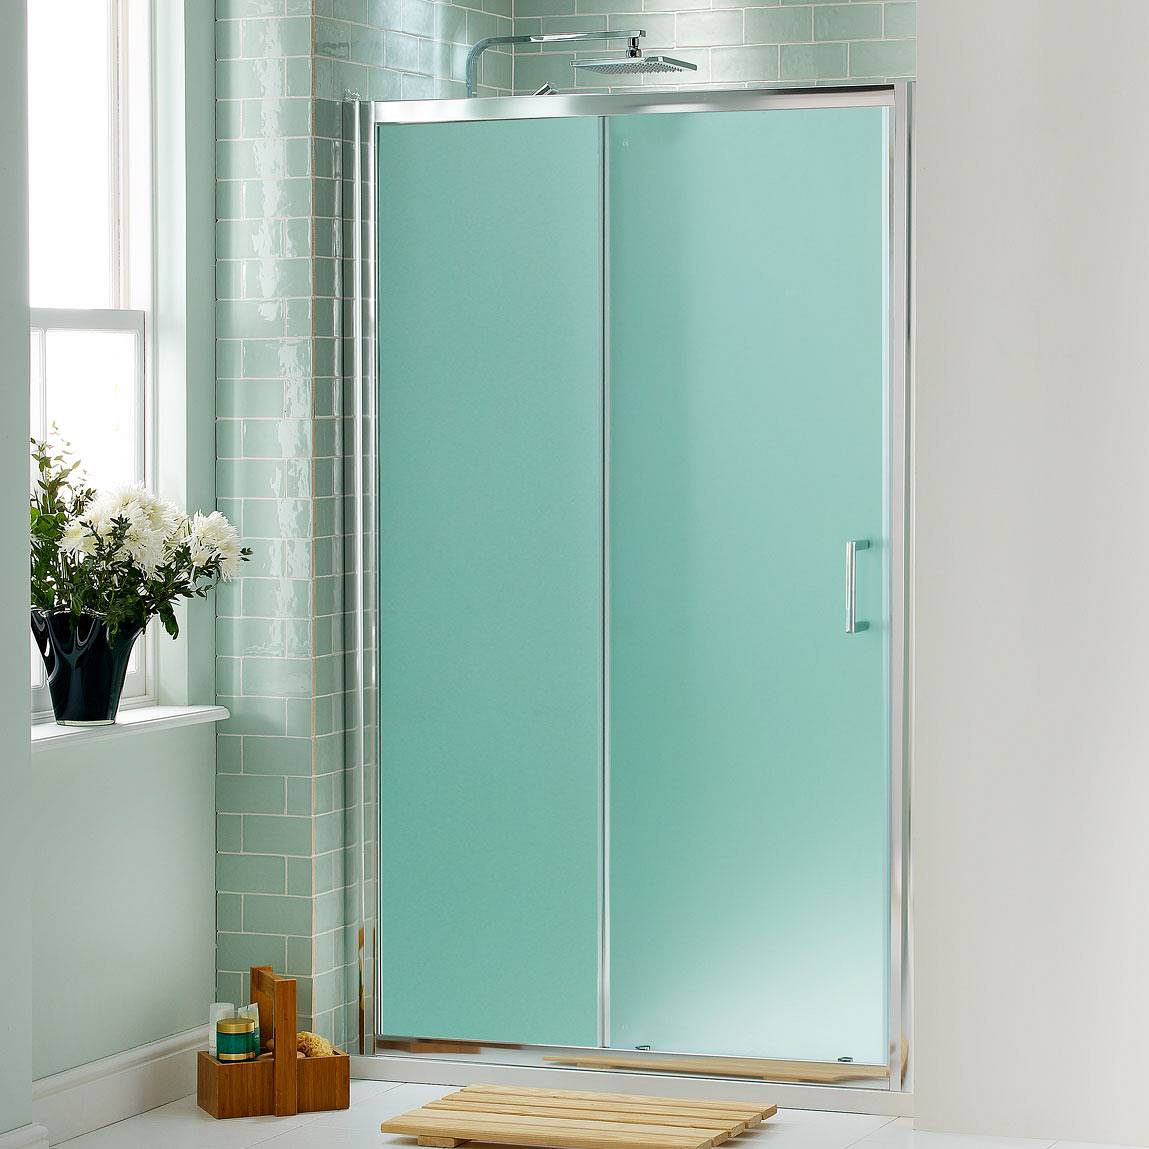 TOP 20 Accordion shower door ideas 2018 | Interior ...